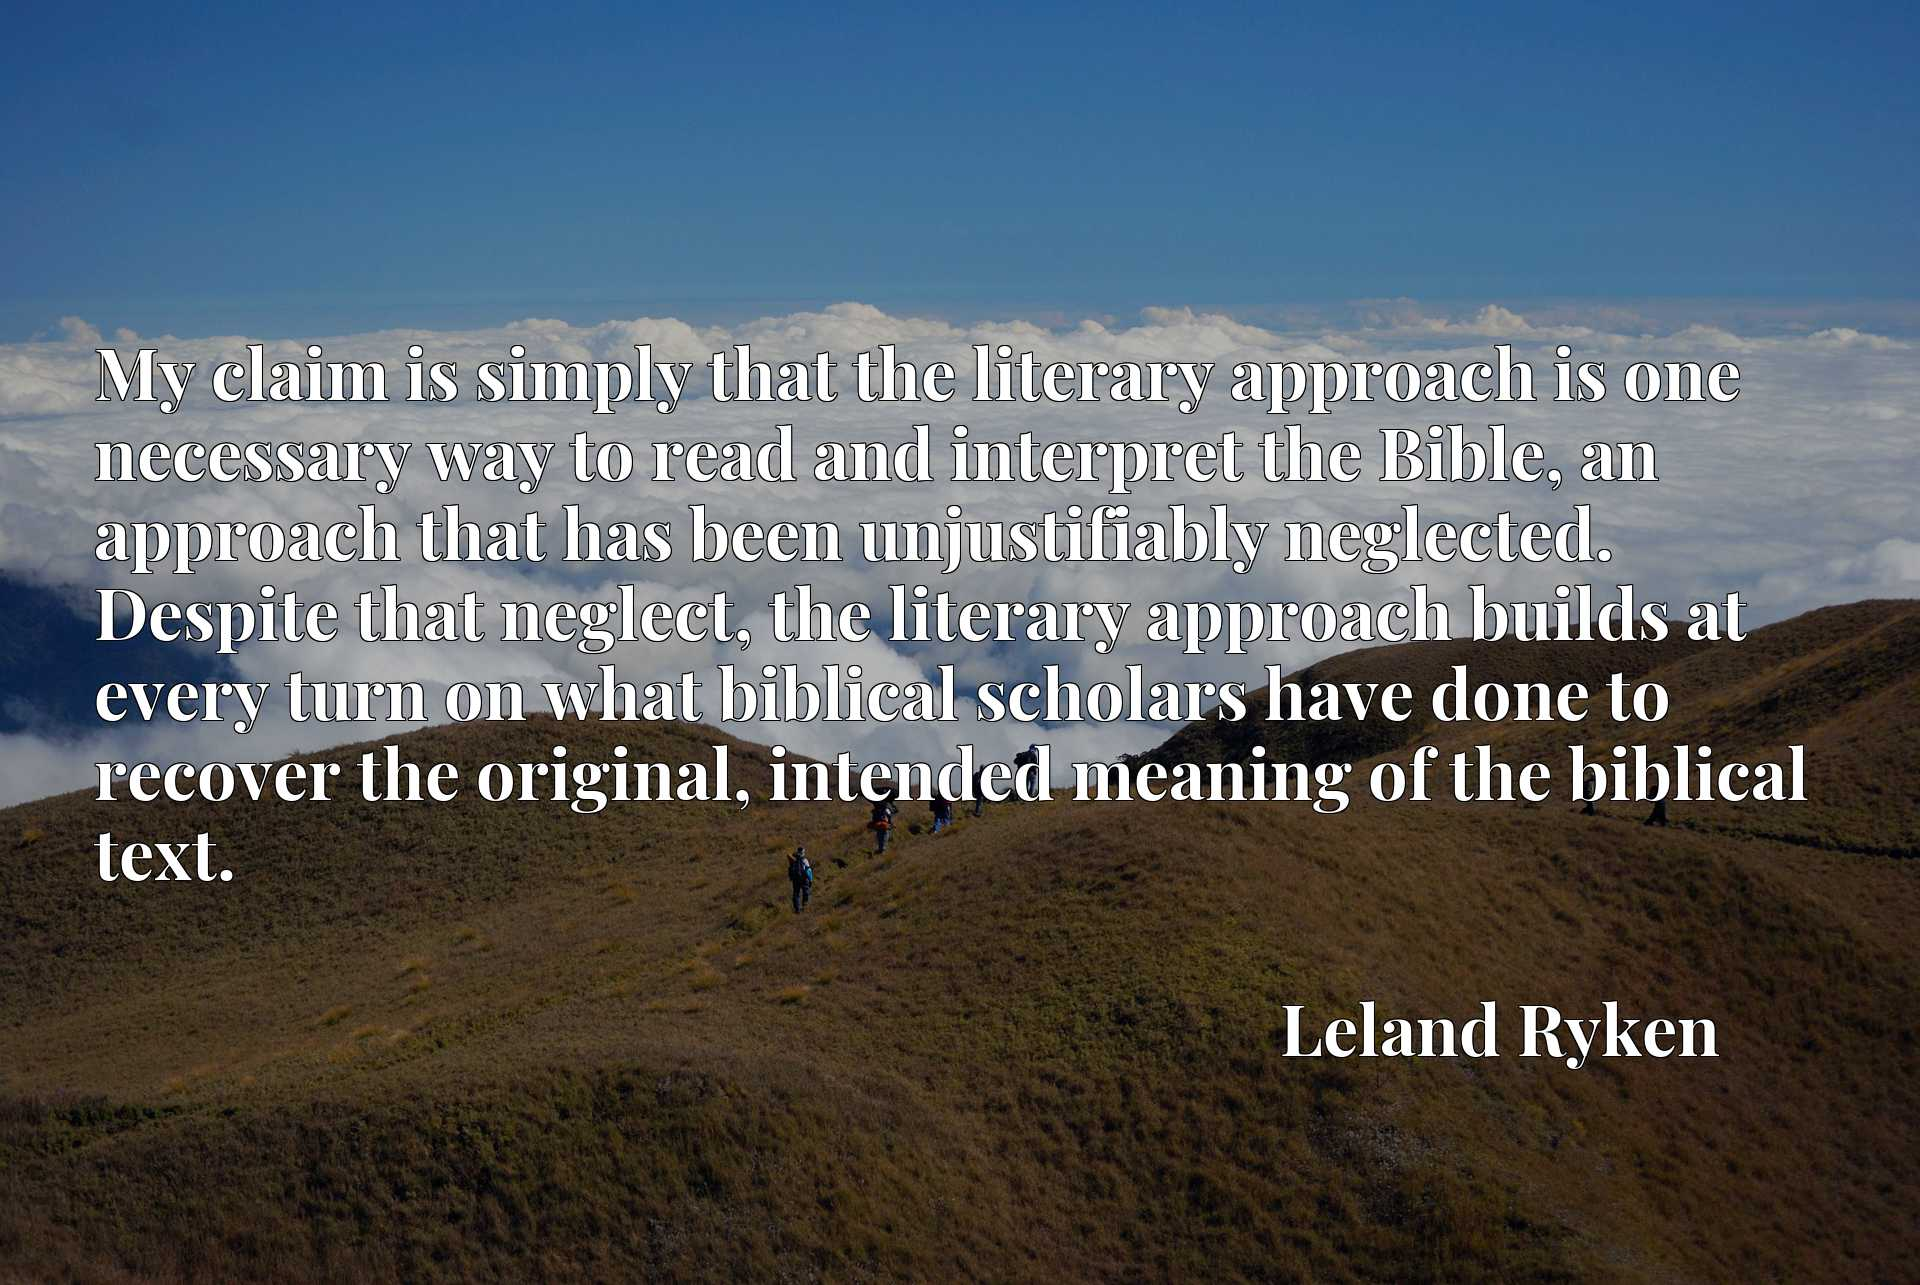 My claim is simply that the literary approach is one necessary way to read and interpret the Bible, an approach that has been unjustifiably neglected. Despite that neglect, the literary approach builds at every turn on what biblical scholars have done to recover the original, intended meaning of the biblical text.